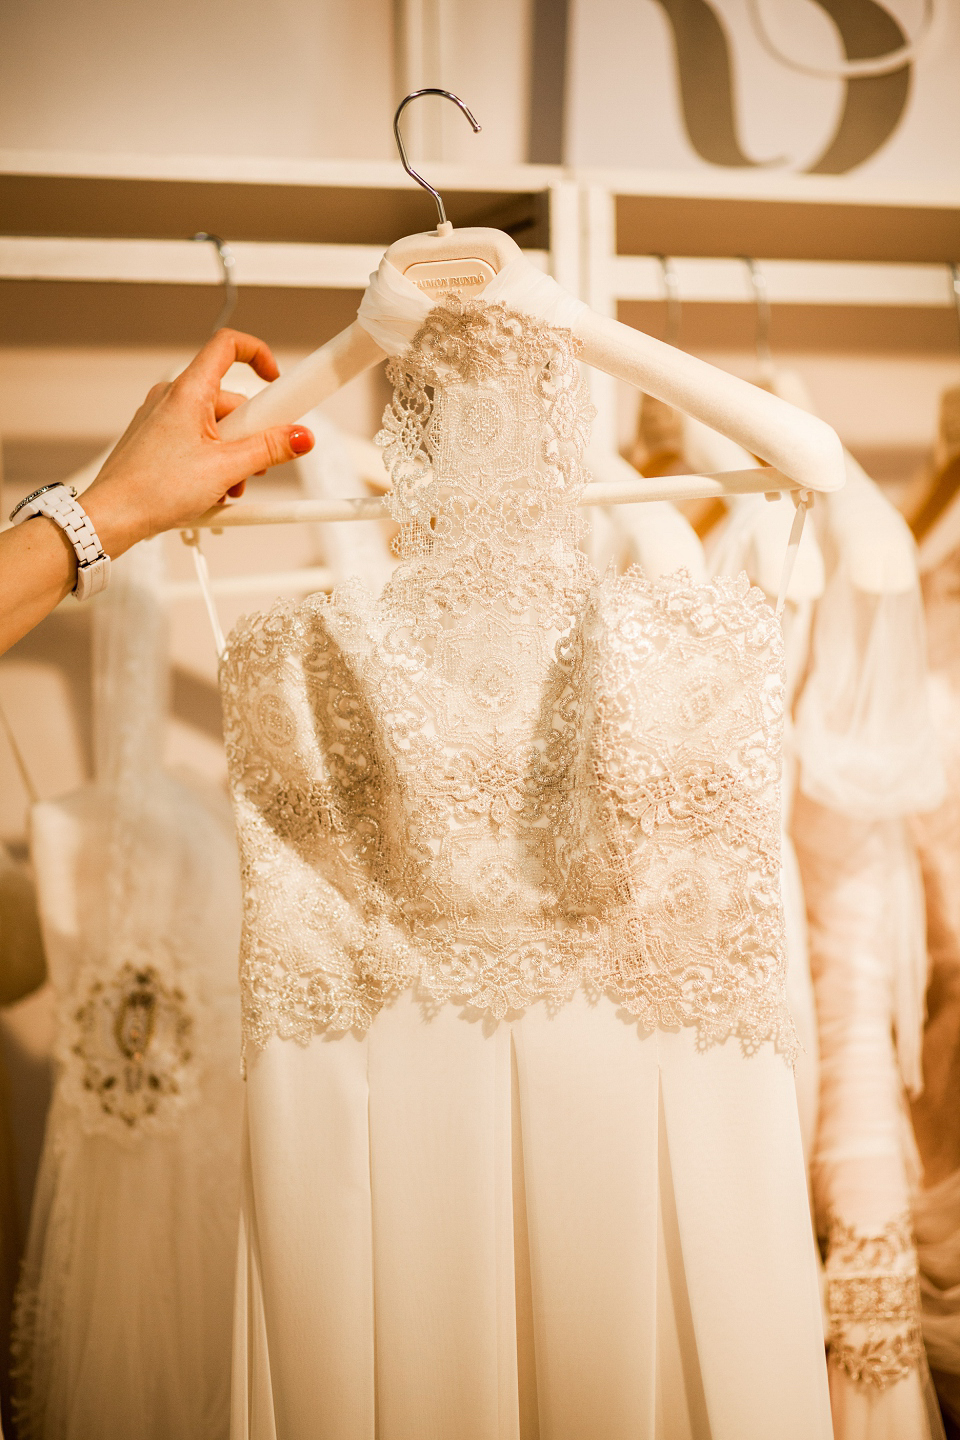 Raimon Bundo wedding dresses at The White Gallery, London, April 2014